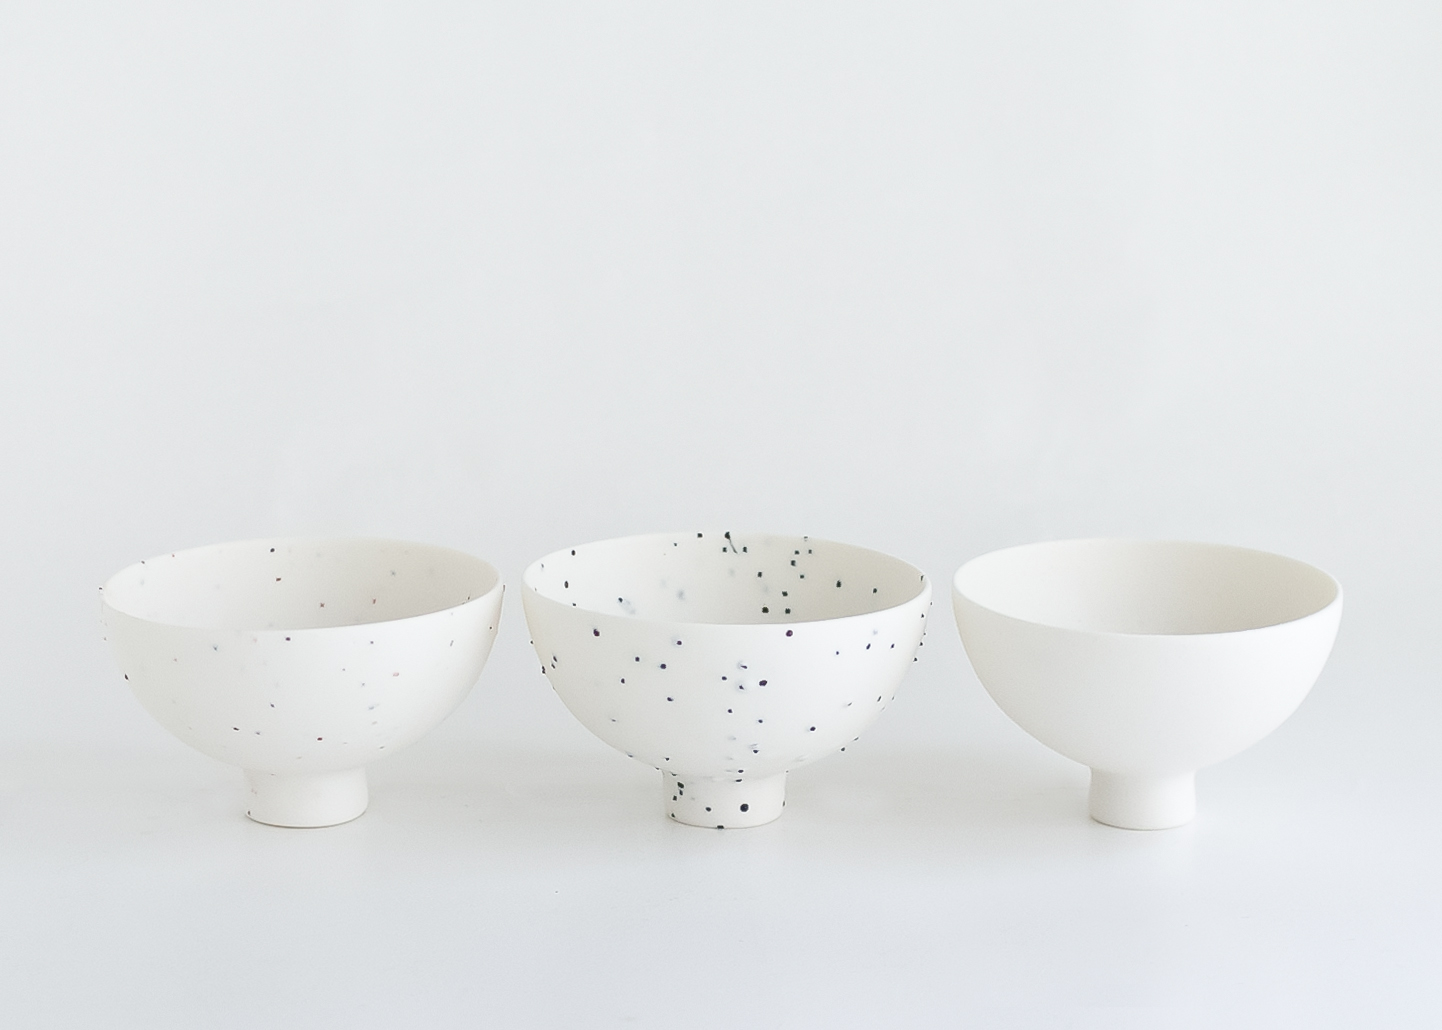 a7_mdba_mdby_ceramics_manufactured_porcelain_mushimegane_books